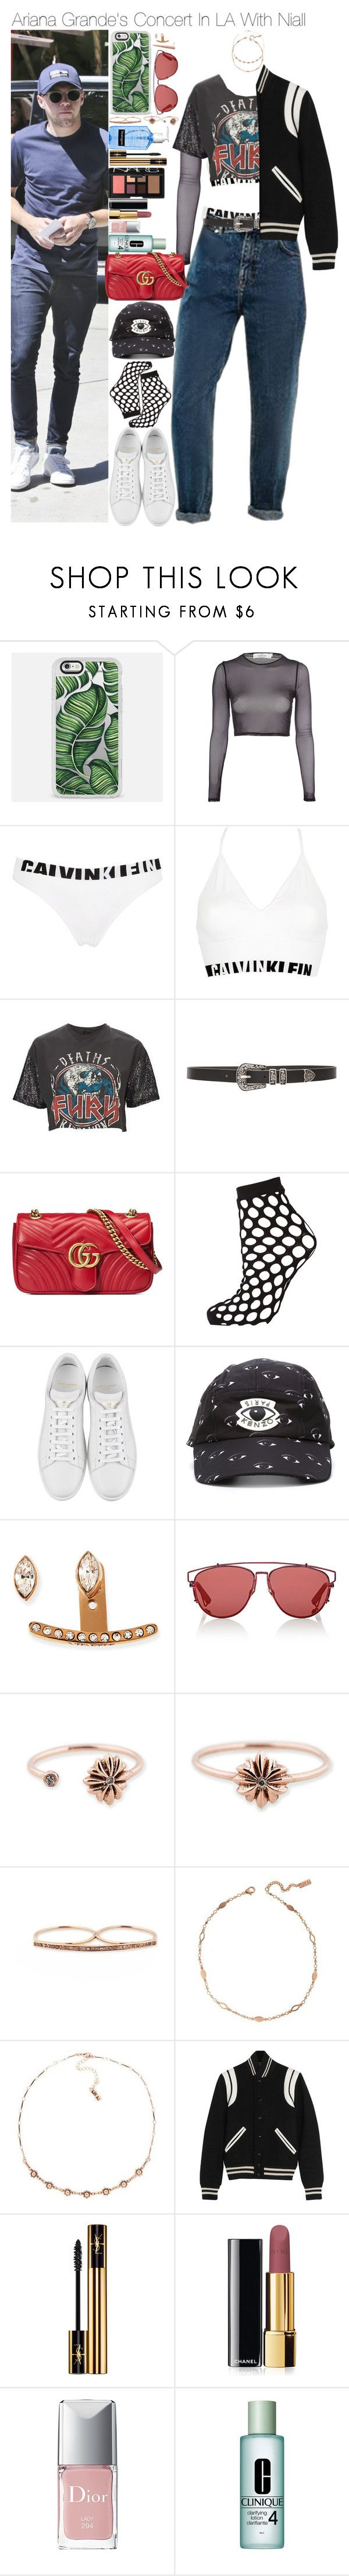 """Sin título #288"" by novemberfourteen ❤ liked on Polyvore featuring beauty, Oh My Love, Calvin Klein Underwear, And Finally, Lovers + Friends, Gucci, Topshop, Yves Saint Laurent, Kenzo and Vita Fede"